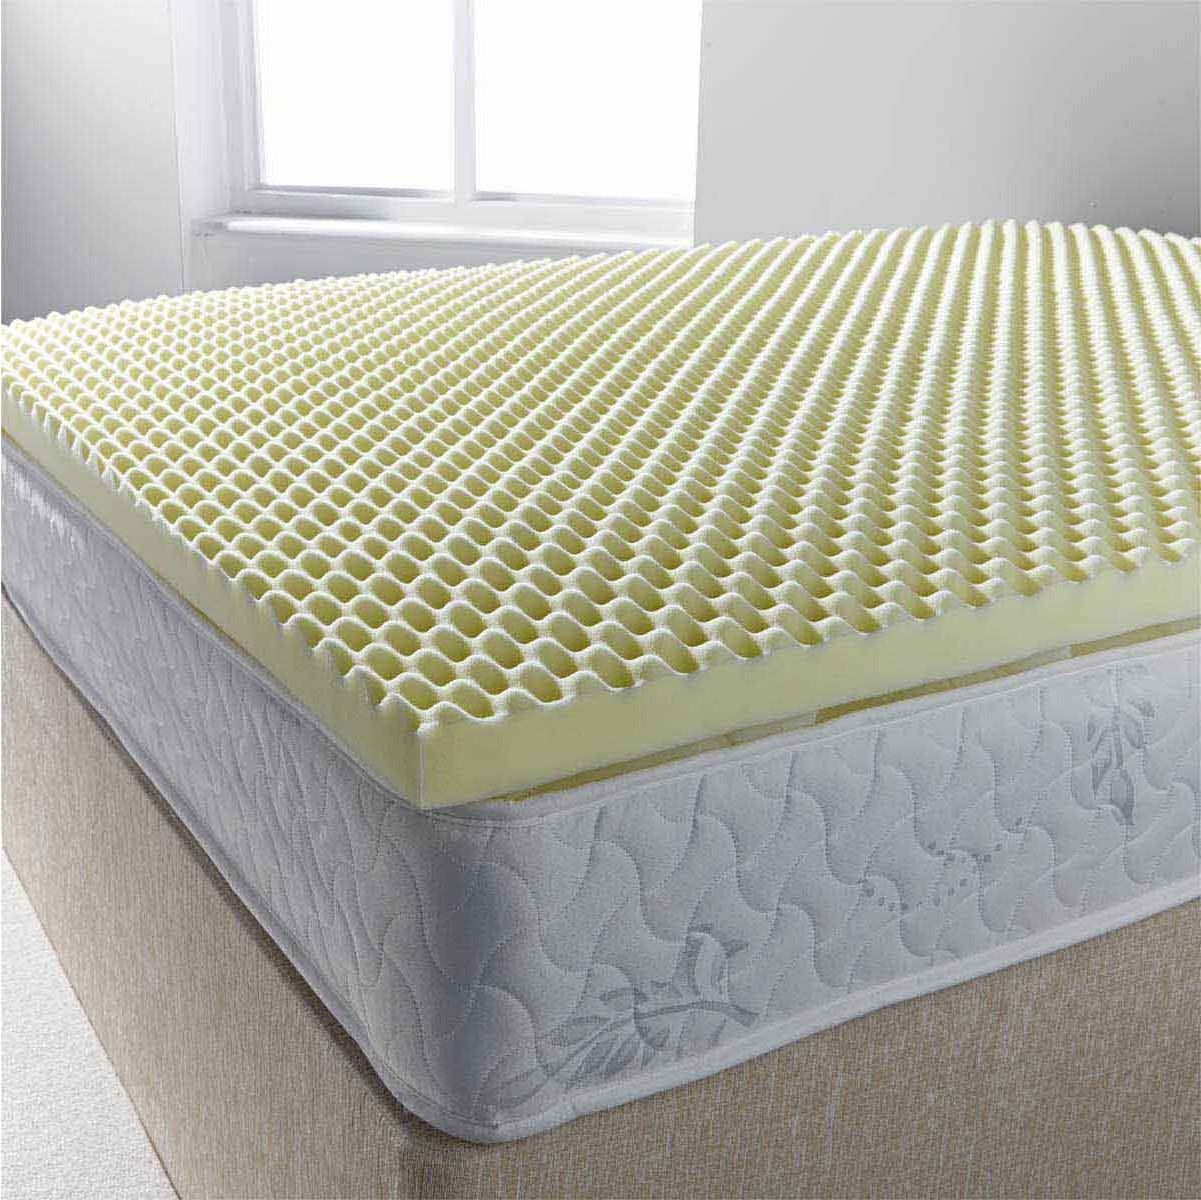 Ultimum Vteggb30060 Egg Profiled Foam Mattress Topper